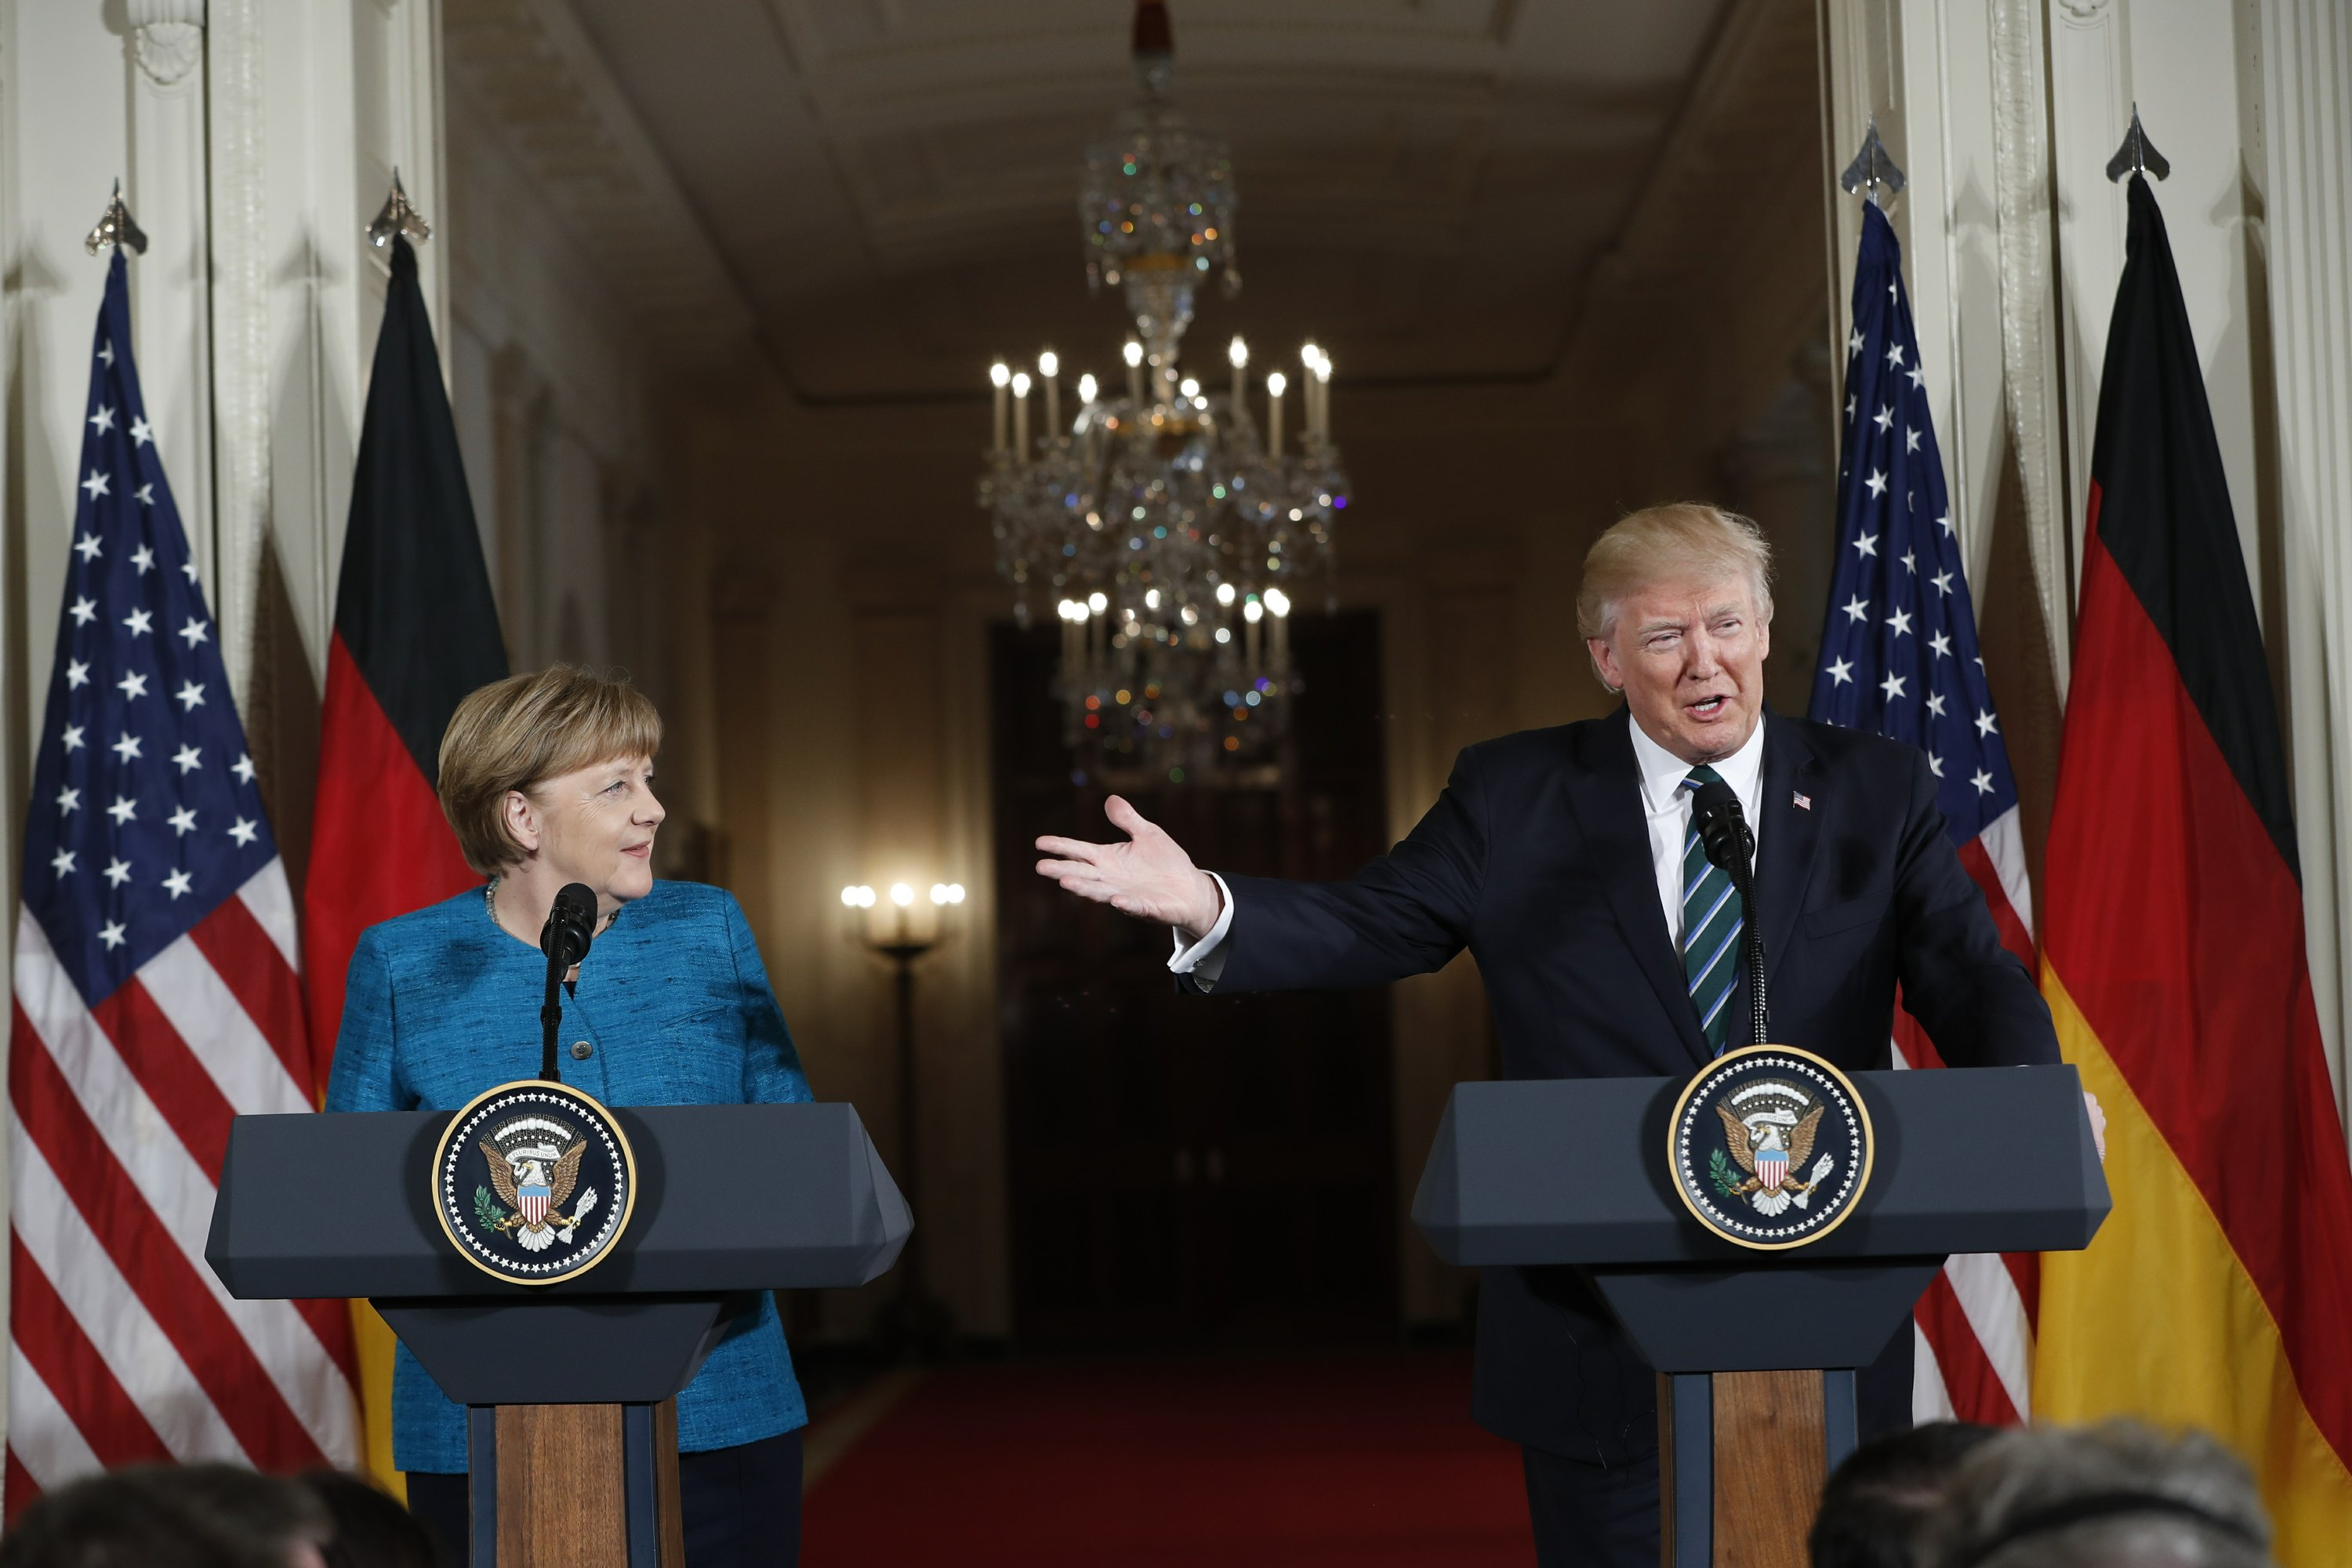 Trump says US 'must be paid more' to defend Germany